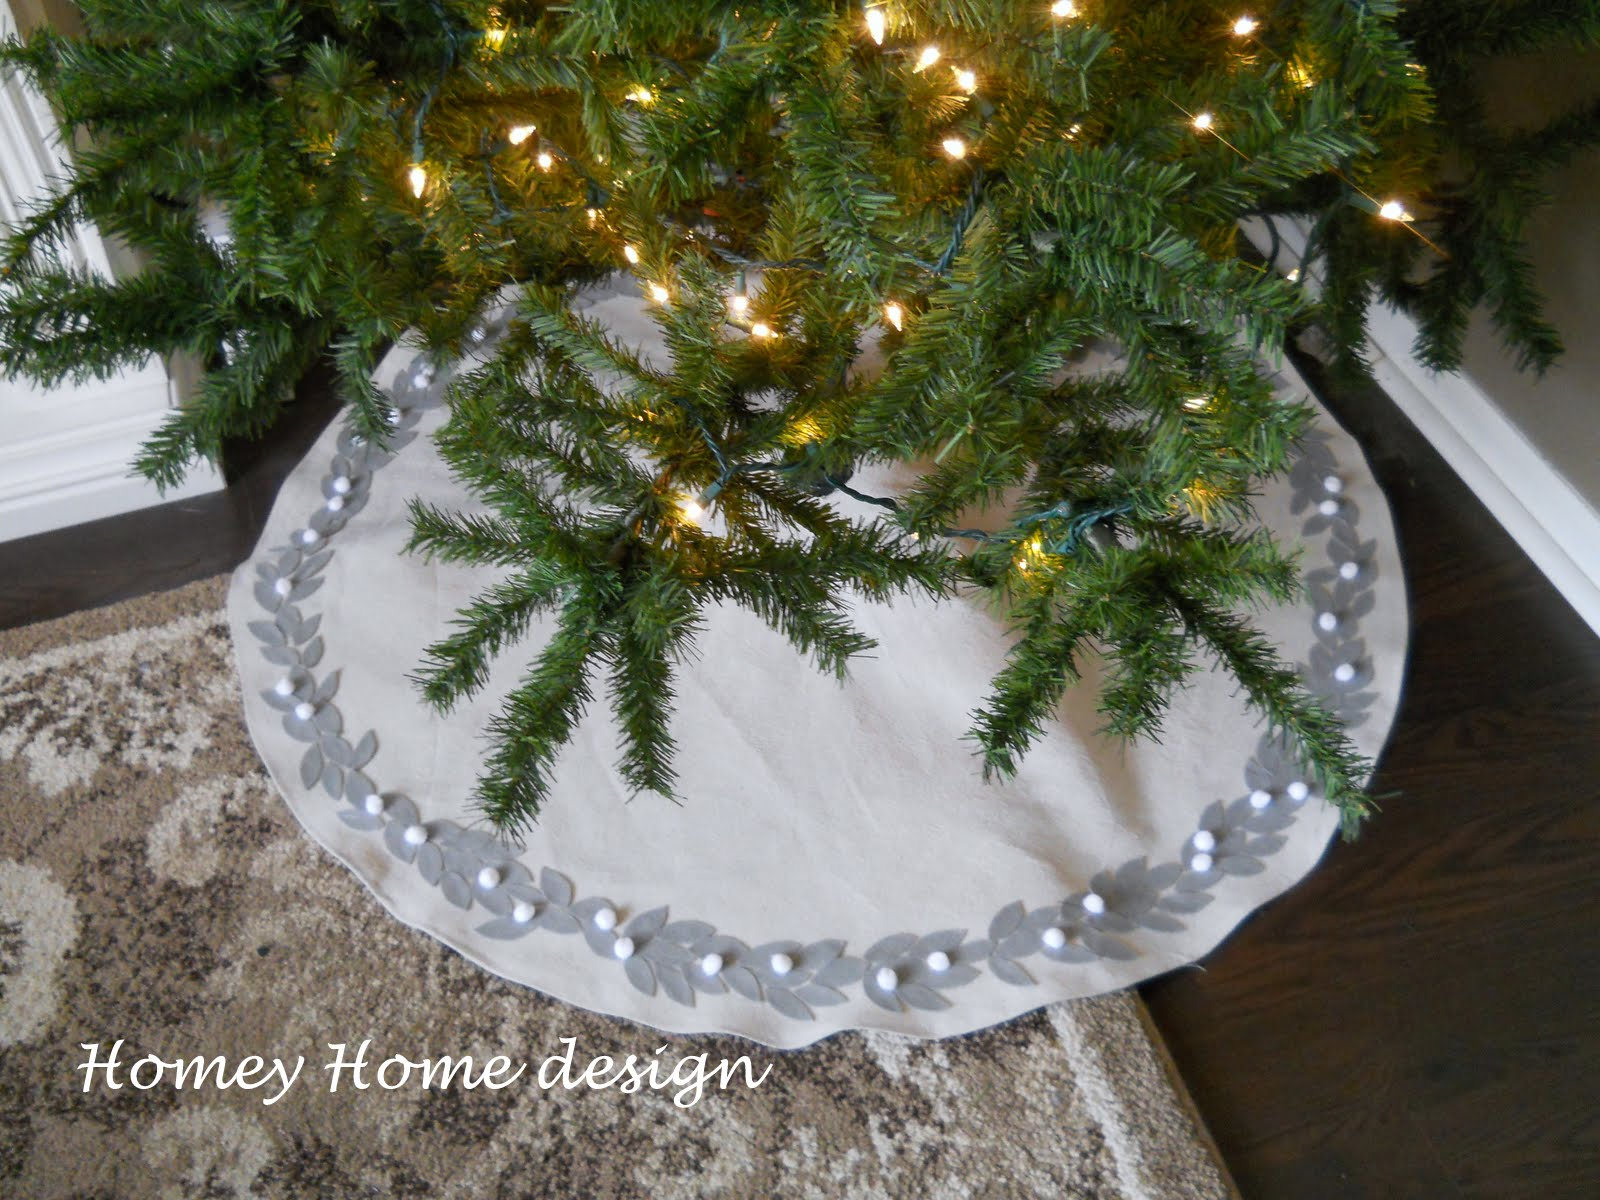 homey home design: Christmas Tree Skirt Tutorial